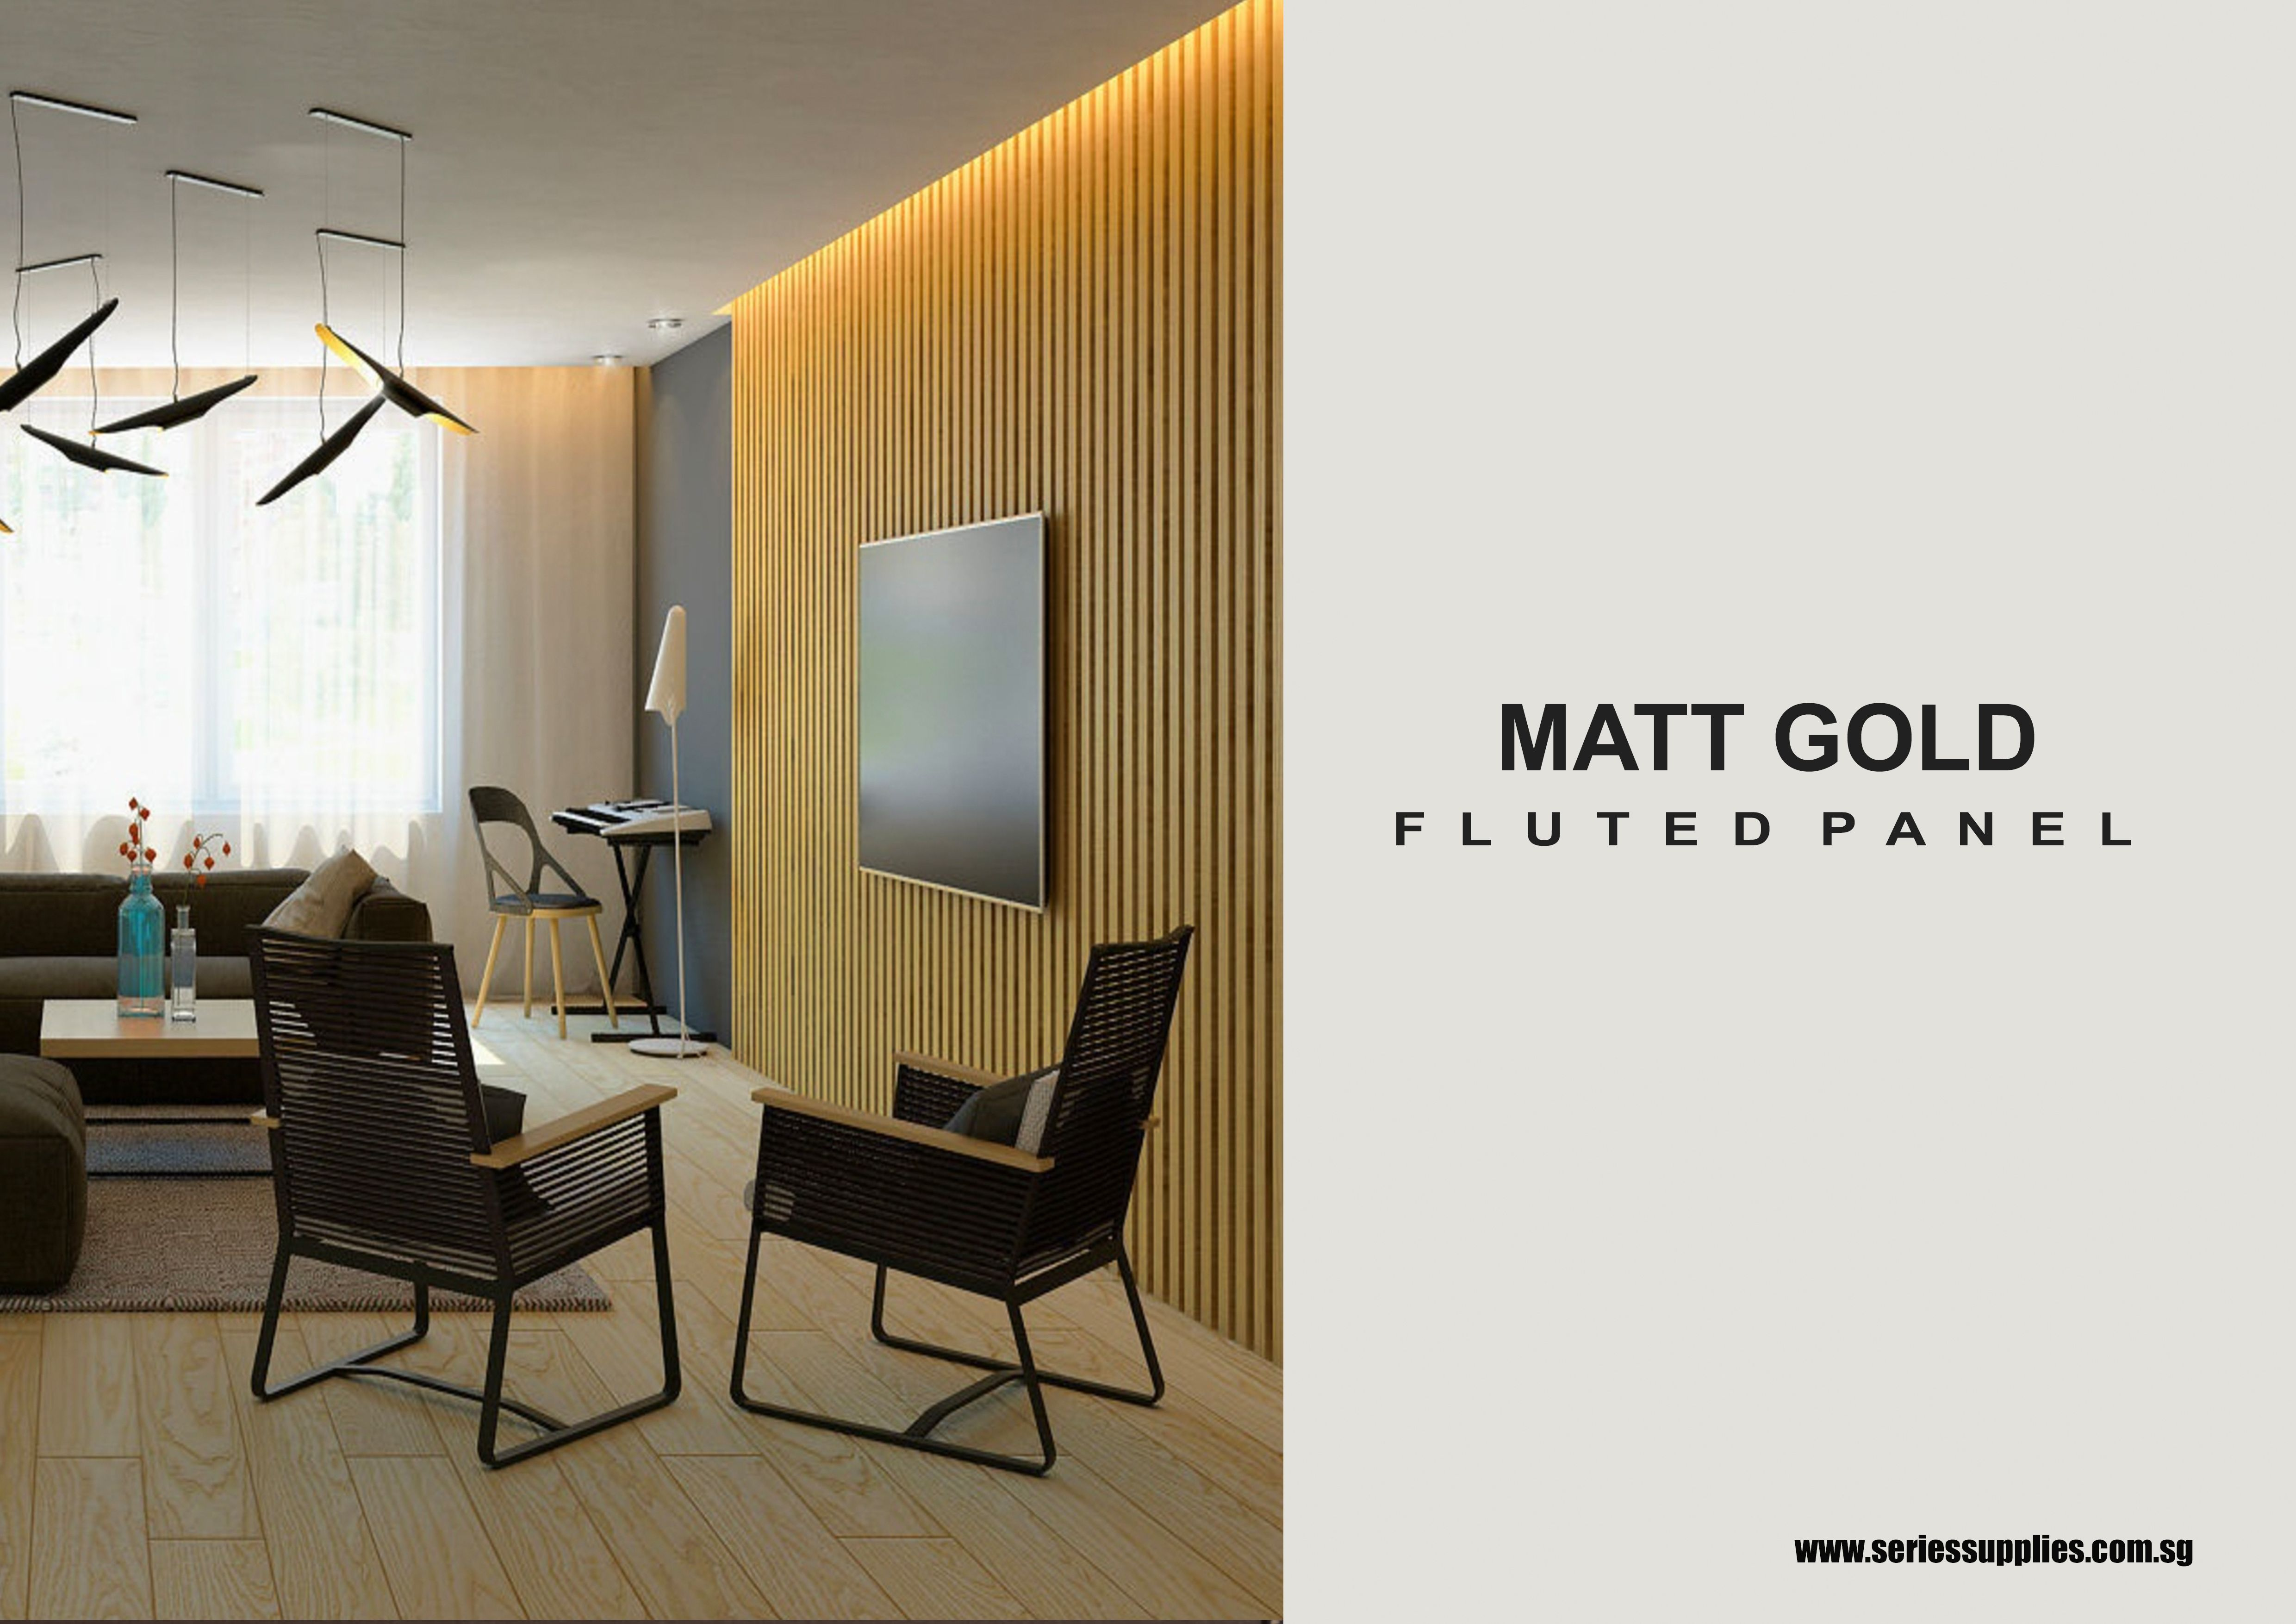 Matt Gold Fluted Panel In 2020 Wall Paneling Paneling Feature Wall Design